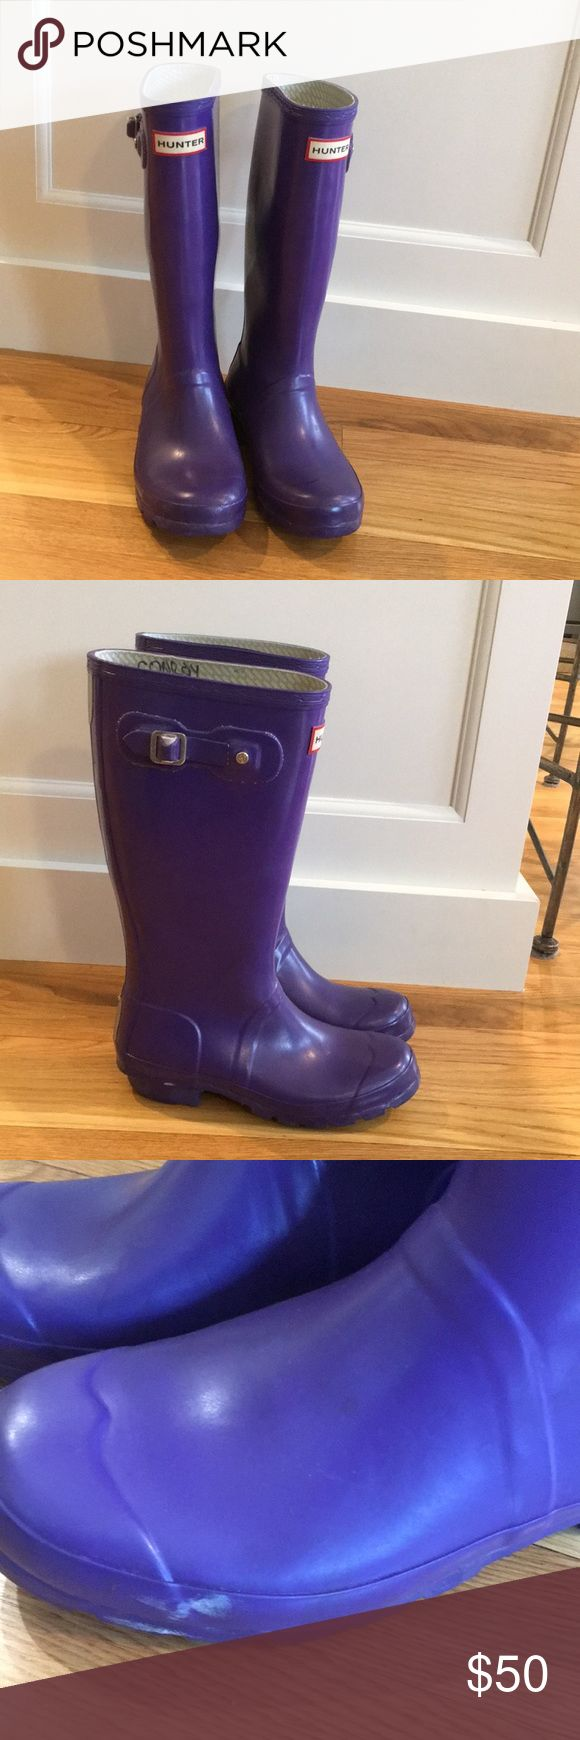 Youth Hunter Boots Used but in good condition bright purple Hunter boots. Keep those feet dry and brighten the day with these boots! Name is written inside as shown. Hunter Boots Shoes Boots